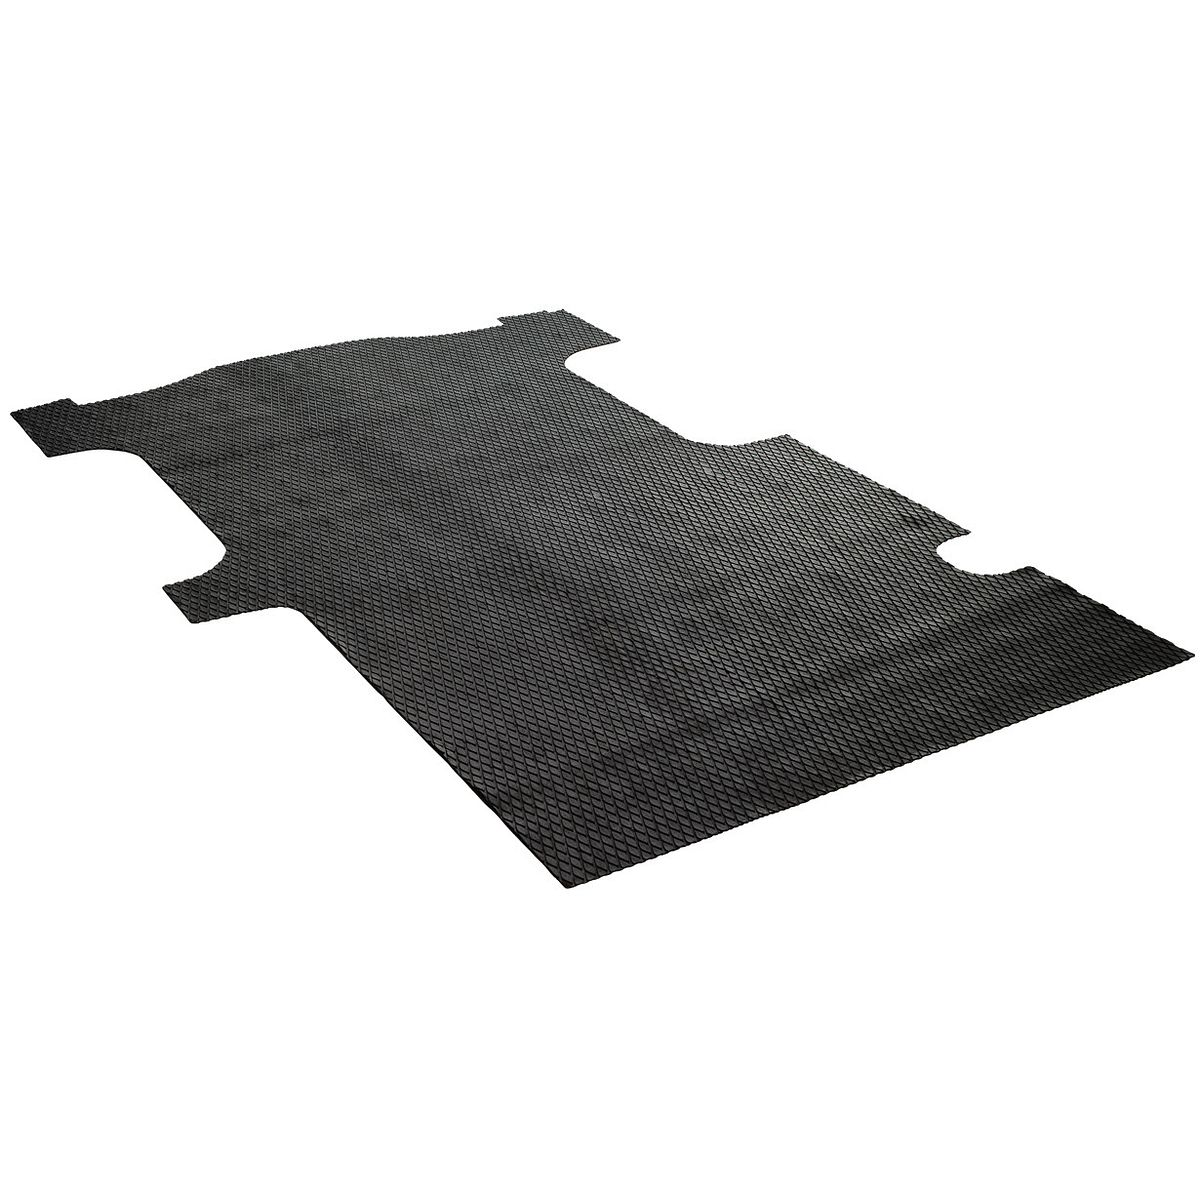 picture ideas blogule of guard houses mats liners and size ford design flooring full for striking weather cars trucks sale floor pictures mat weatherguard automotiveweatherguard